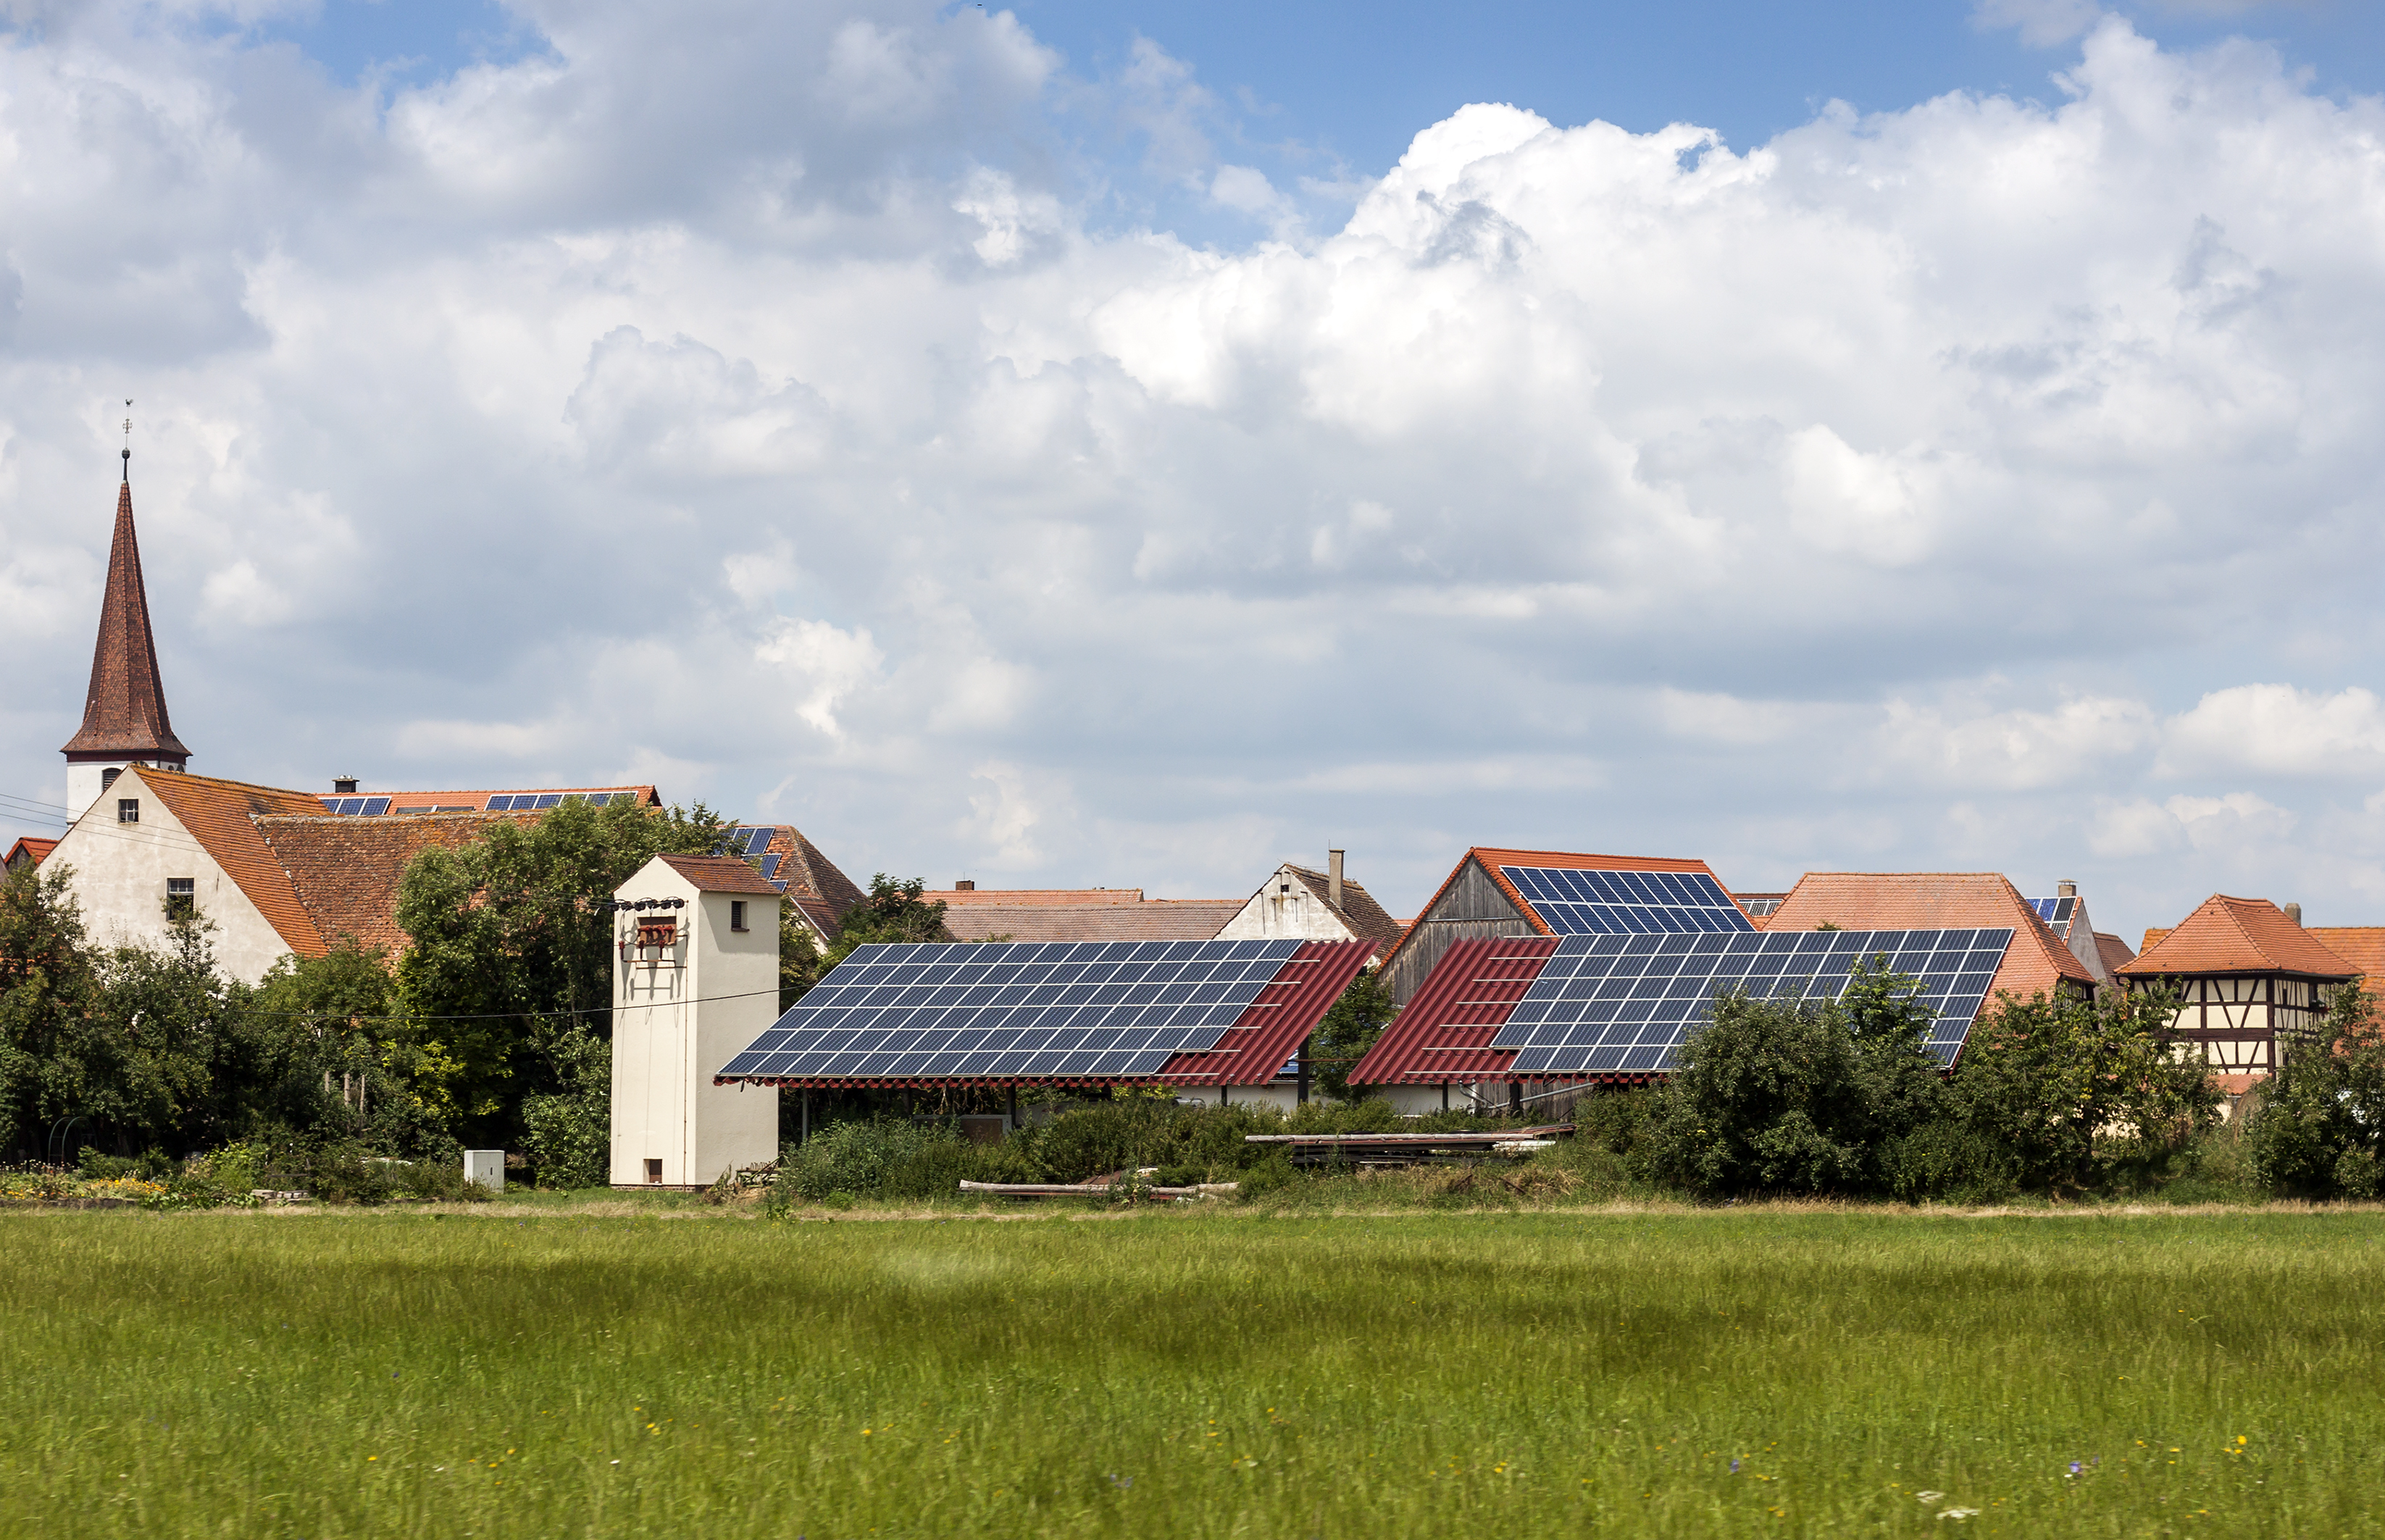 Solar powered homes in a rural village in Germany. Solar panels on roof as alternative energy source.